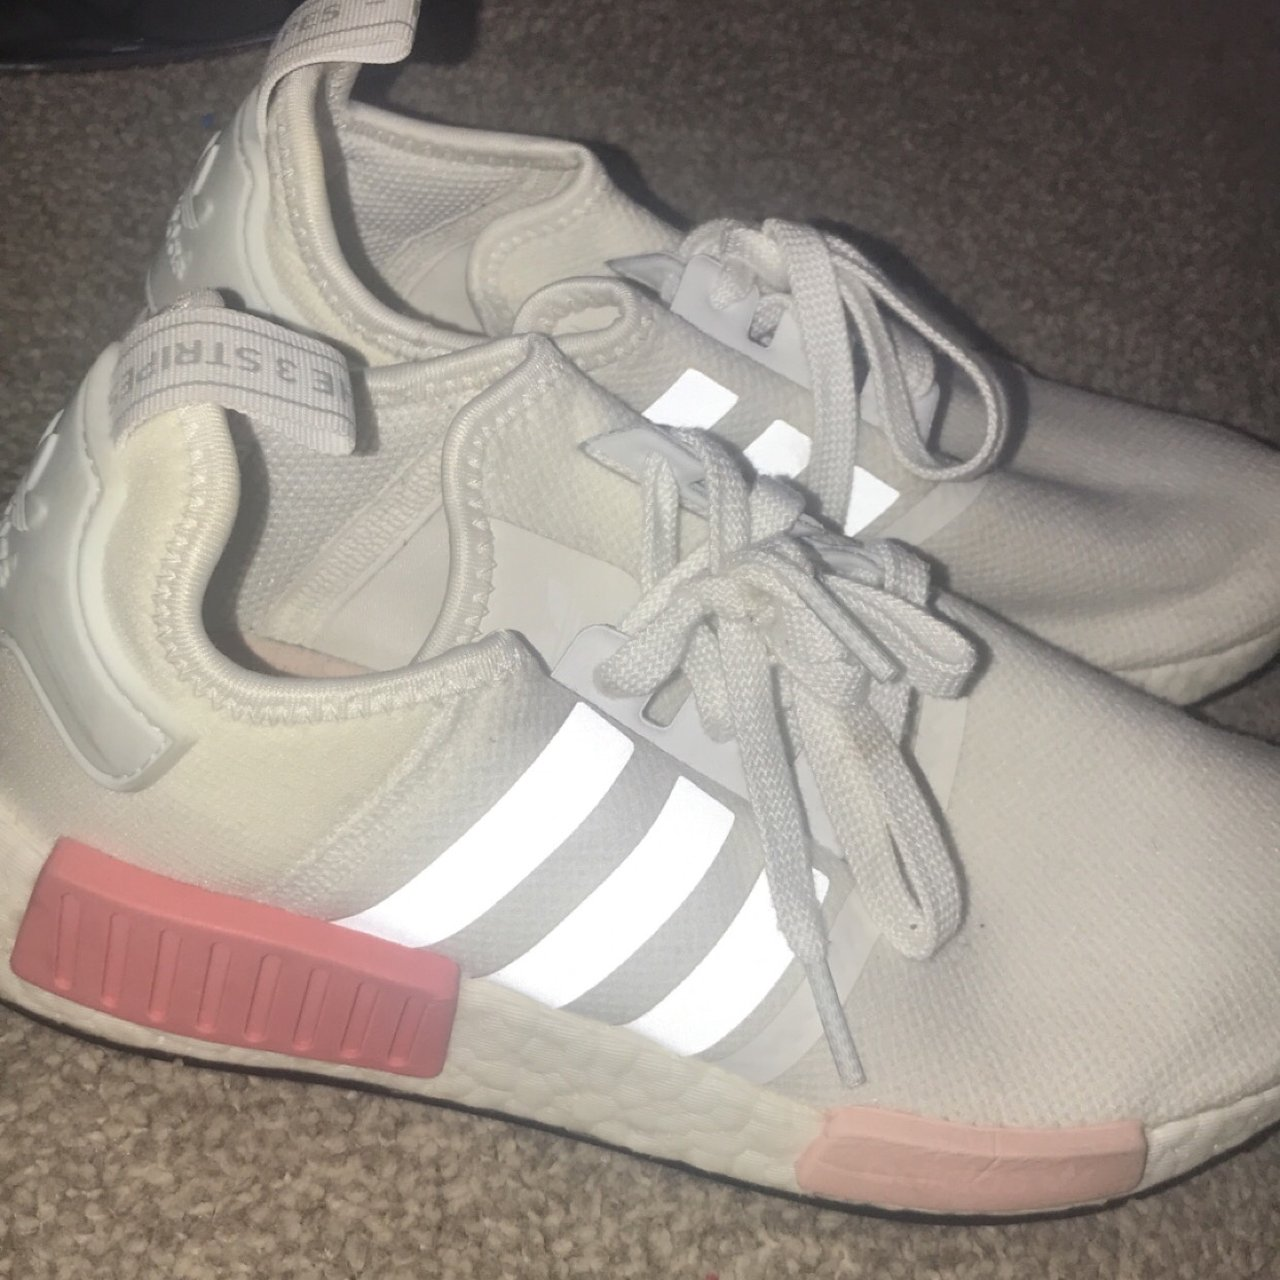 Adidas nmd white and pink size 7 only worn 3-4 times as they - Depop 6e199f95b